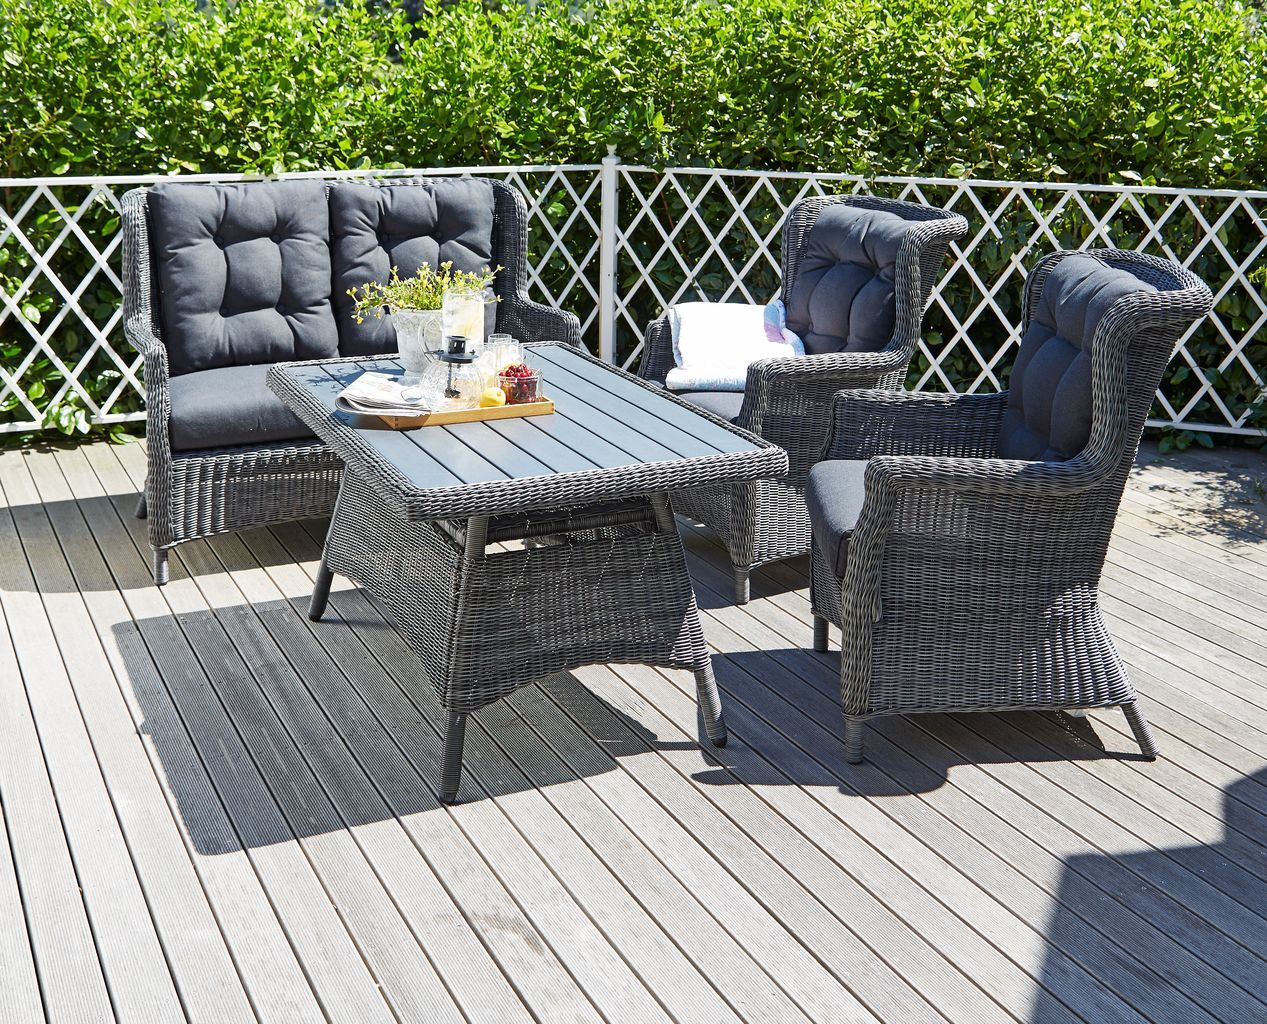 Garden Lounge Furniture With Matching Table To Complete The Outdoor Set Lounge Furniture Outdoor Furniture Sets Outdoor Furniture